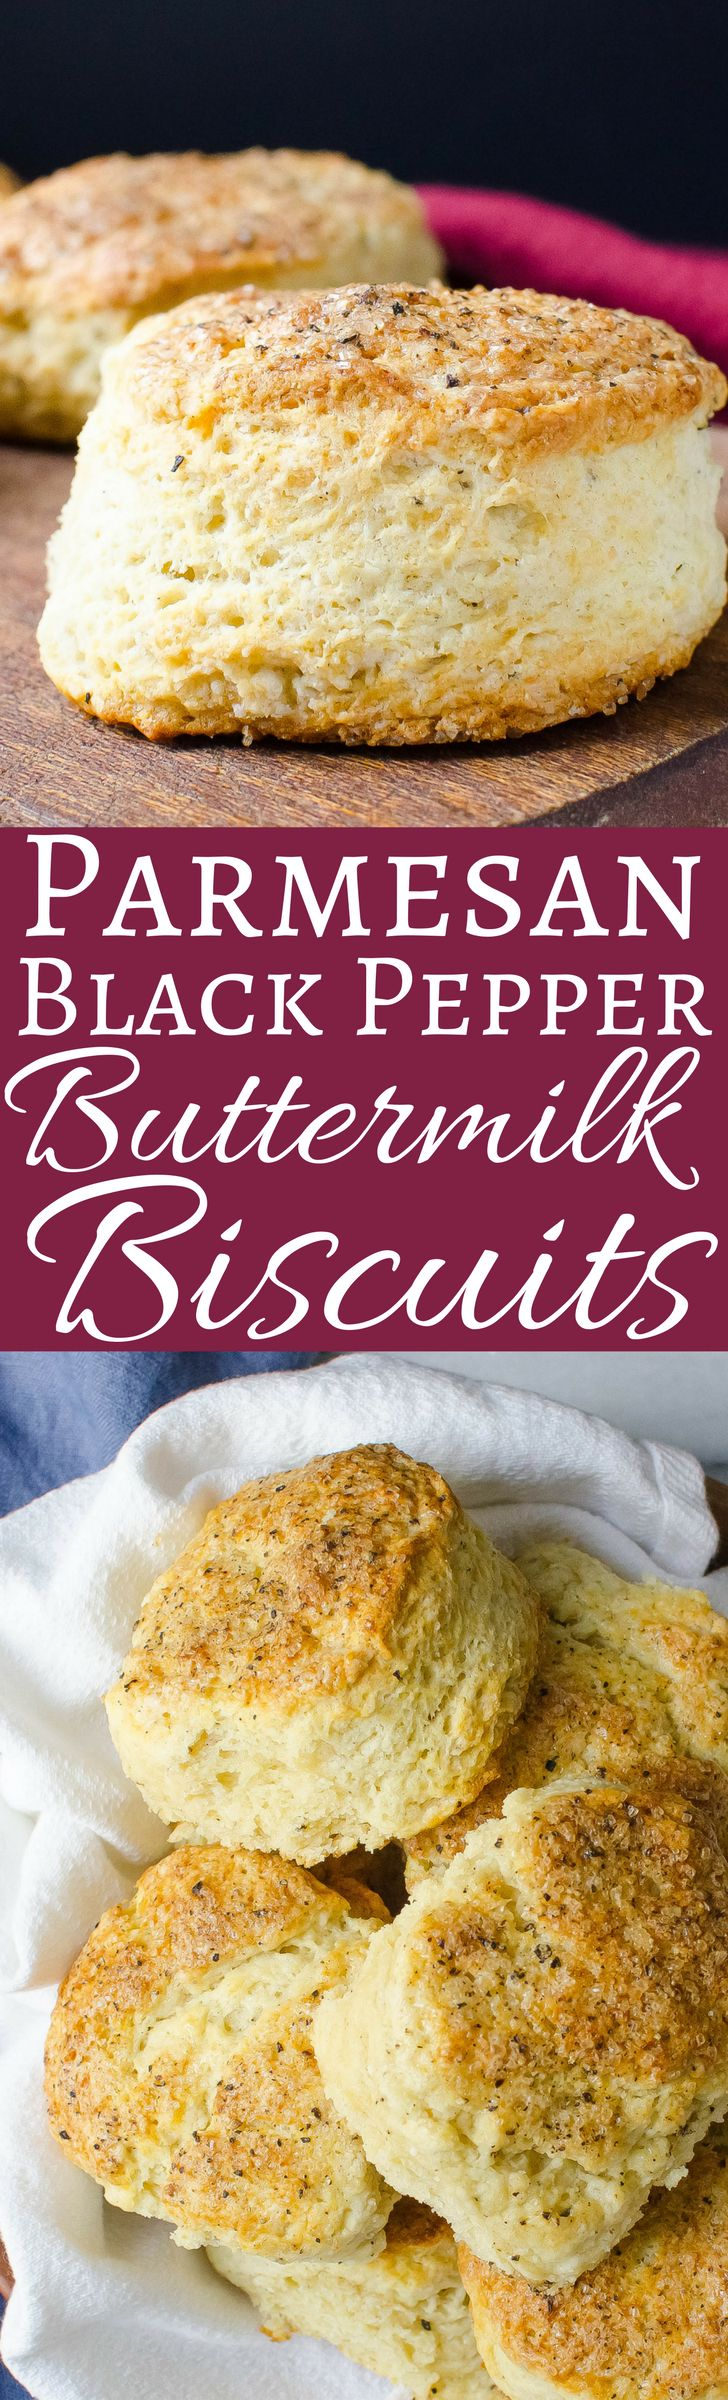 parmesan-black-pepper-buttermilk-biscuits